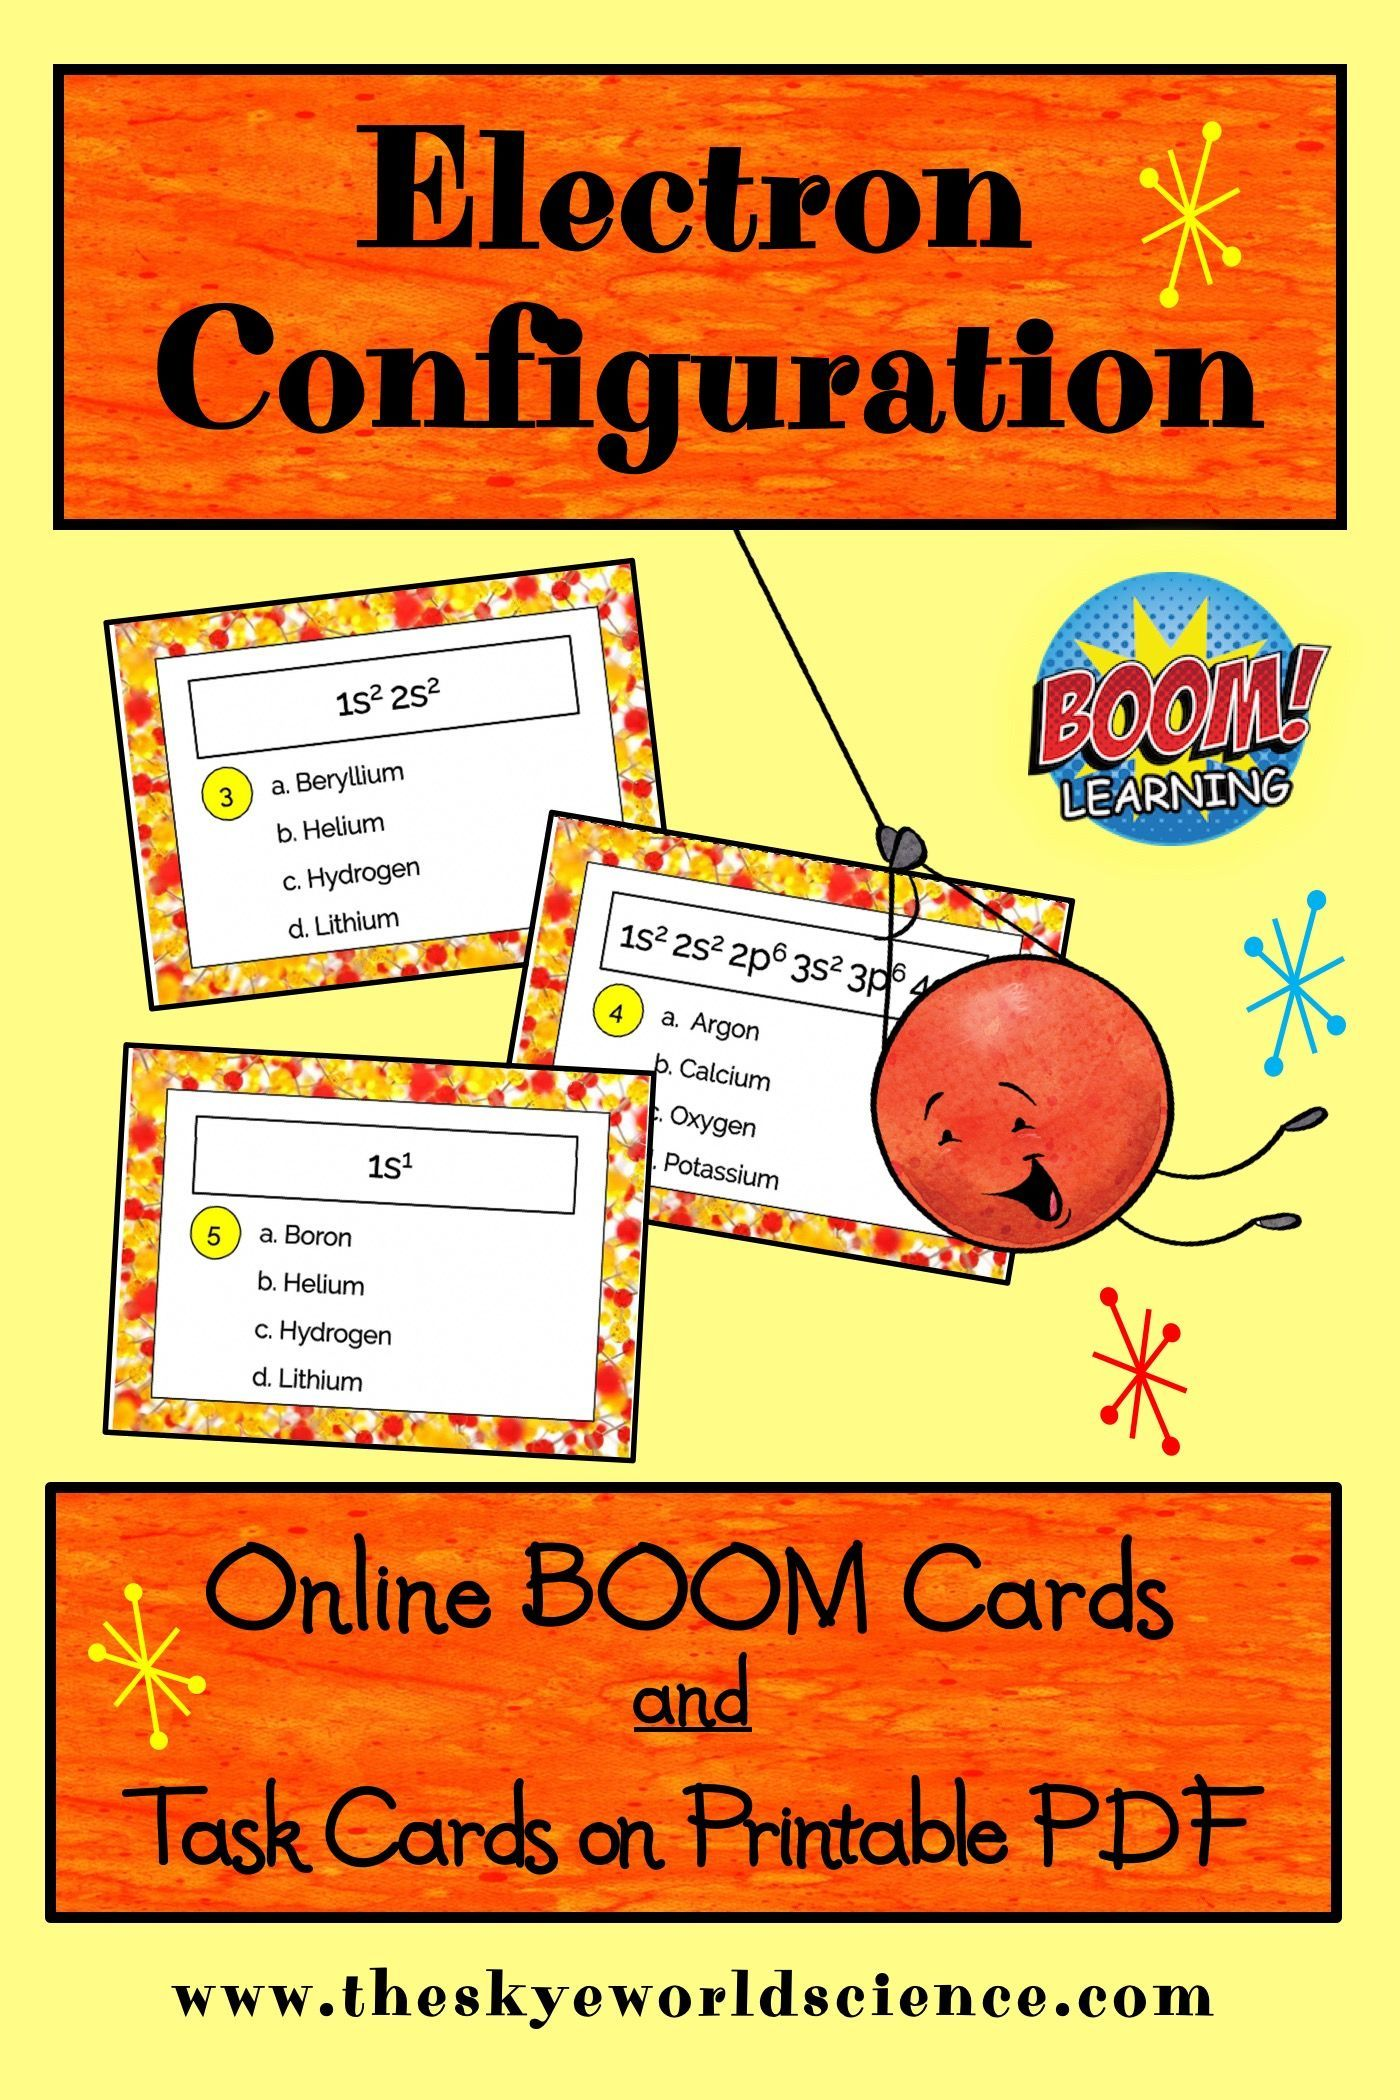 Electron Configuration Task Cards